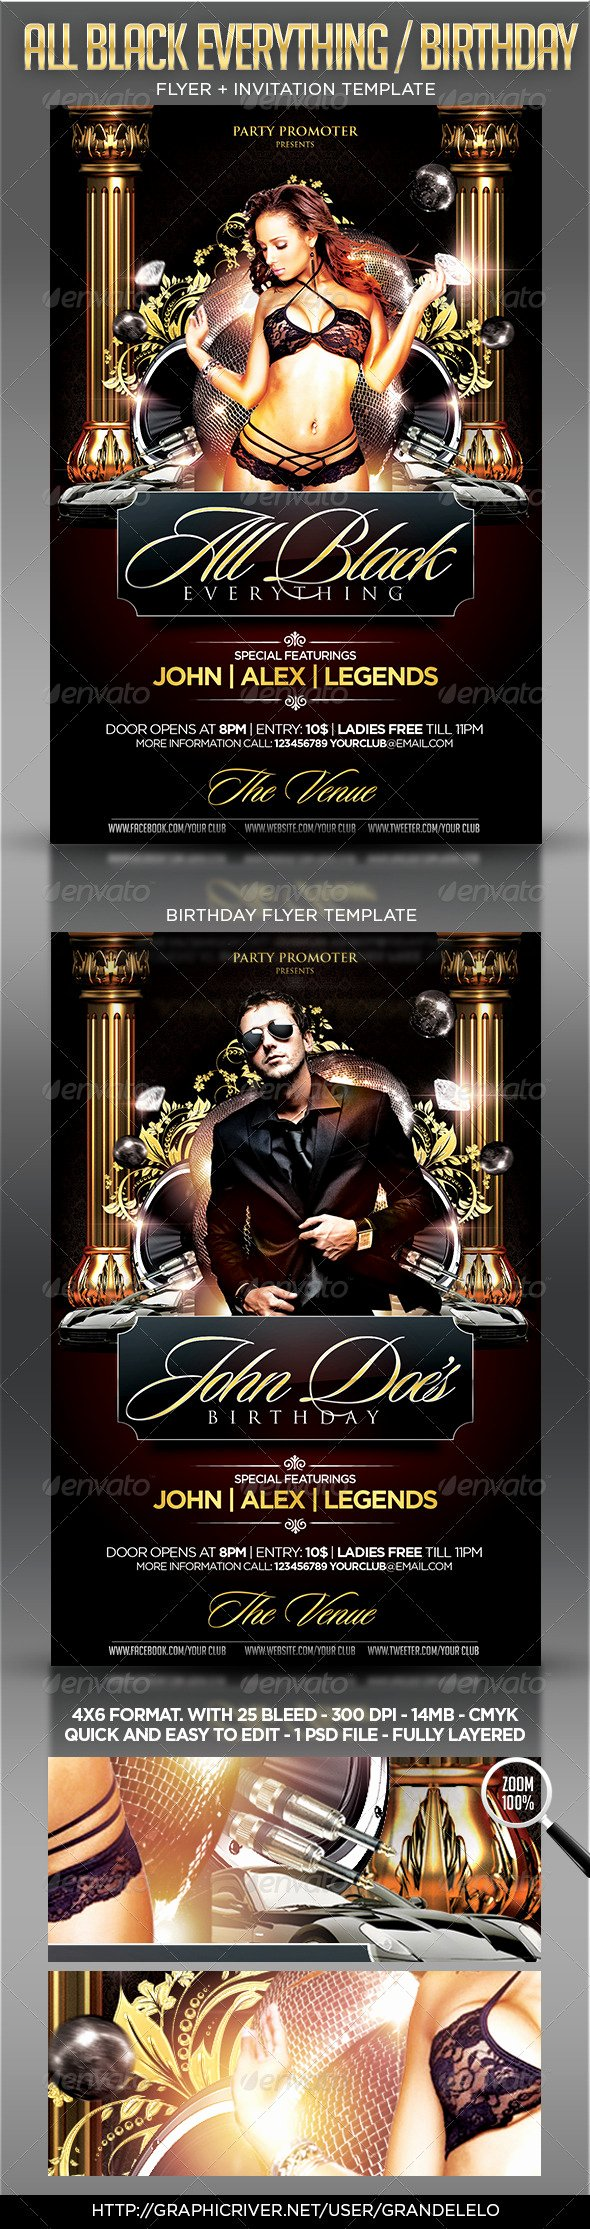 All Black Party Flyer Unique All Black Birthday Party Flyer Template by Grandelelo